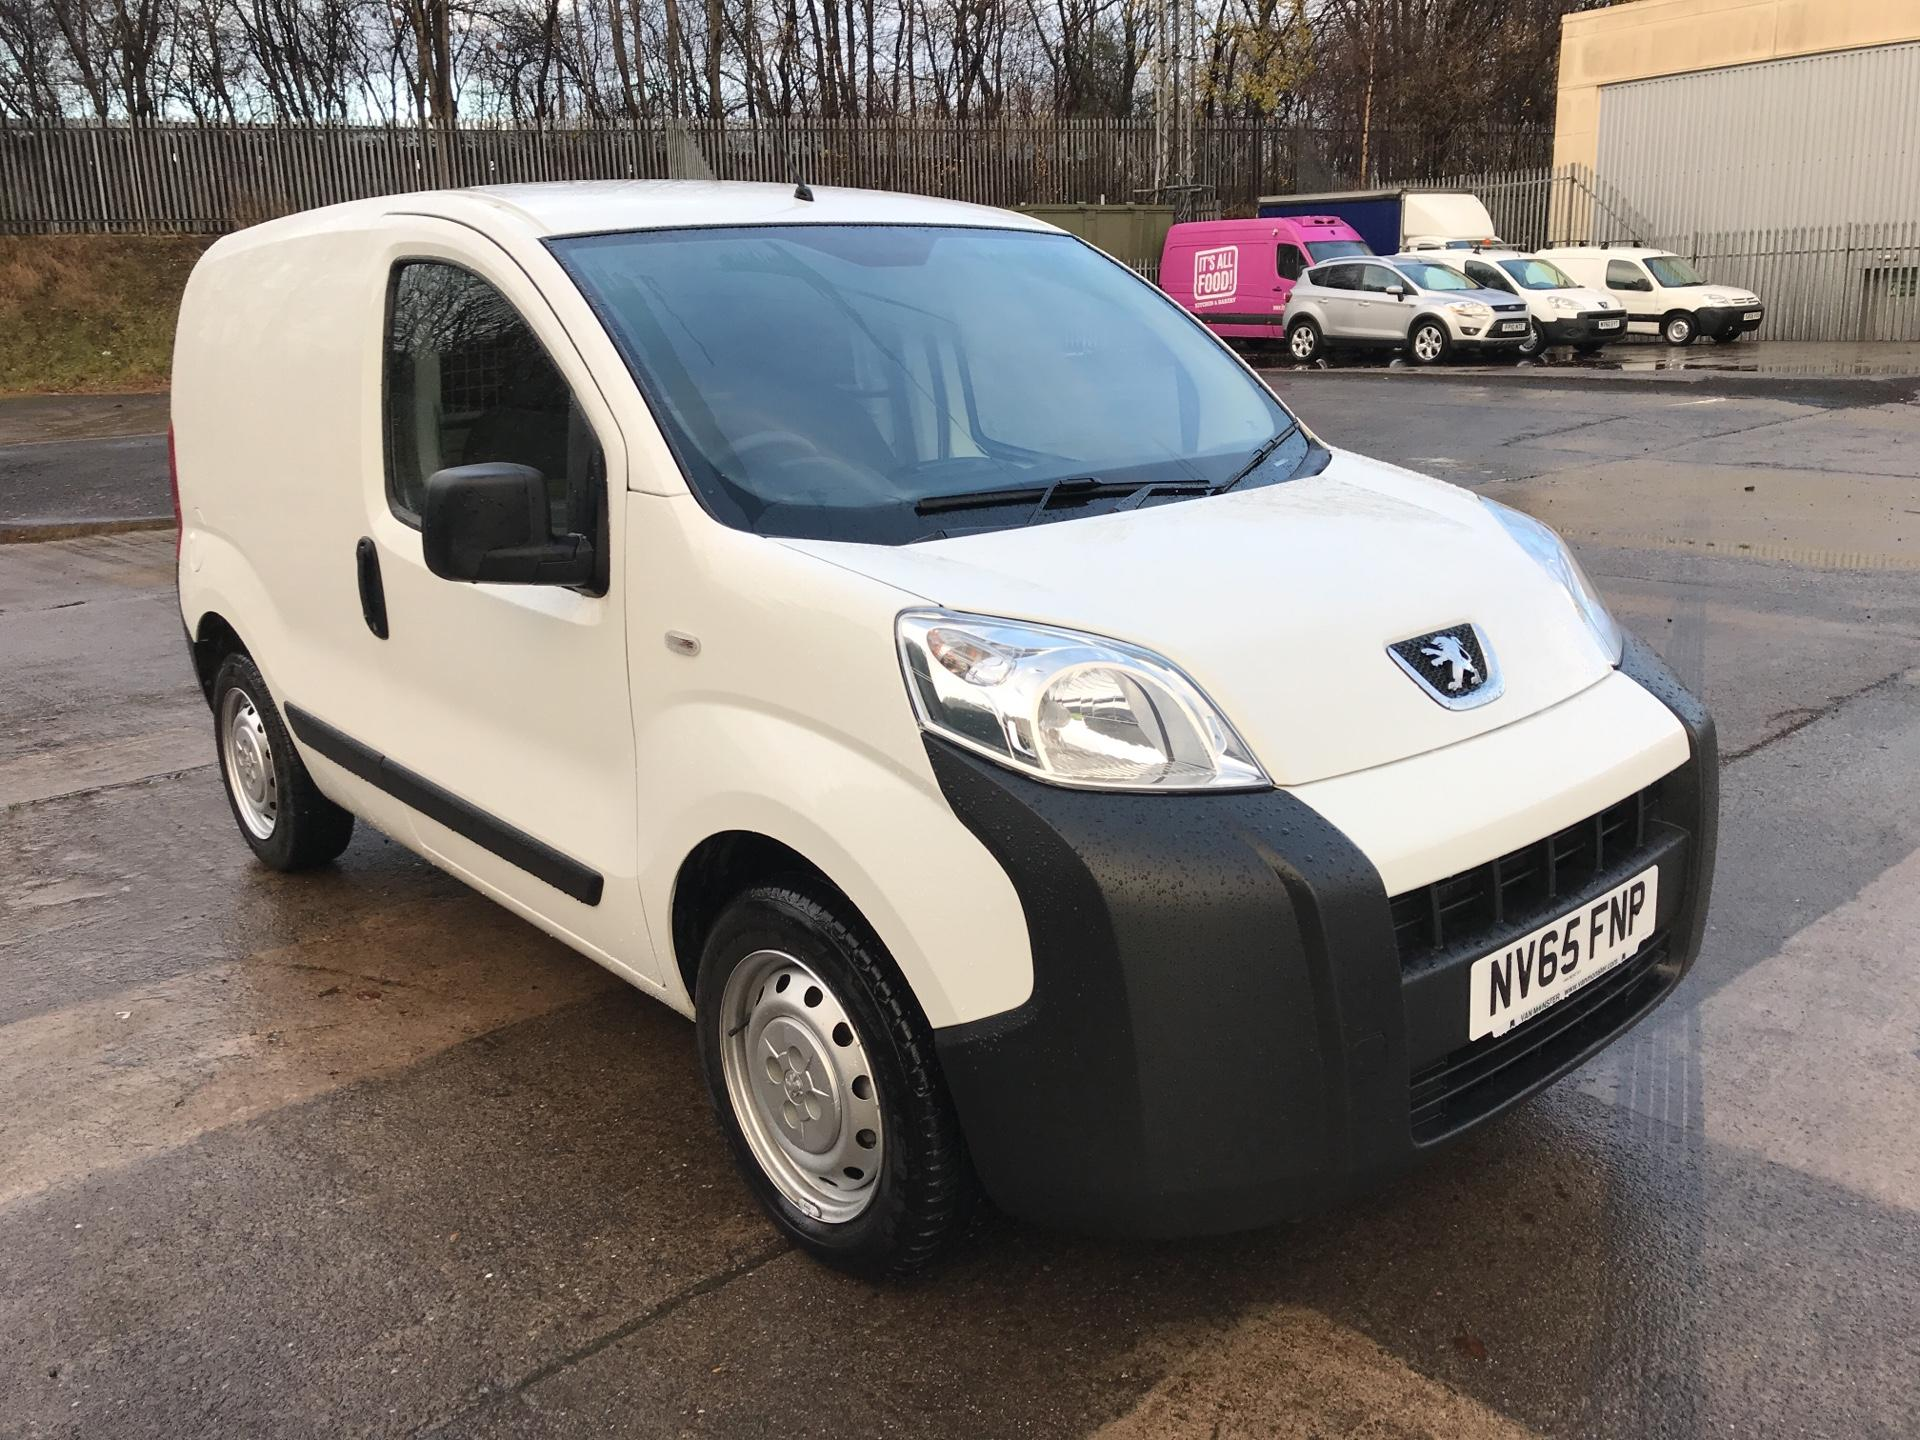 2015 Peugeot Bipper 1.3 HDI 75PS S PLUS PACK NON S/S EURO 5 (NV65FNP)